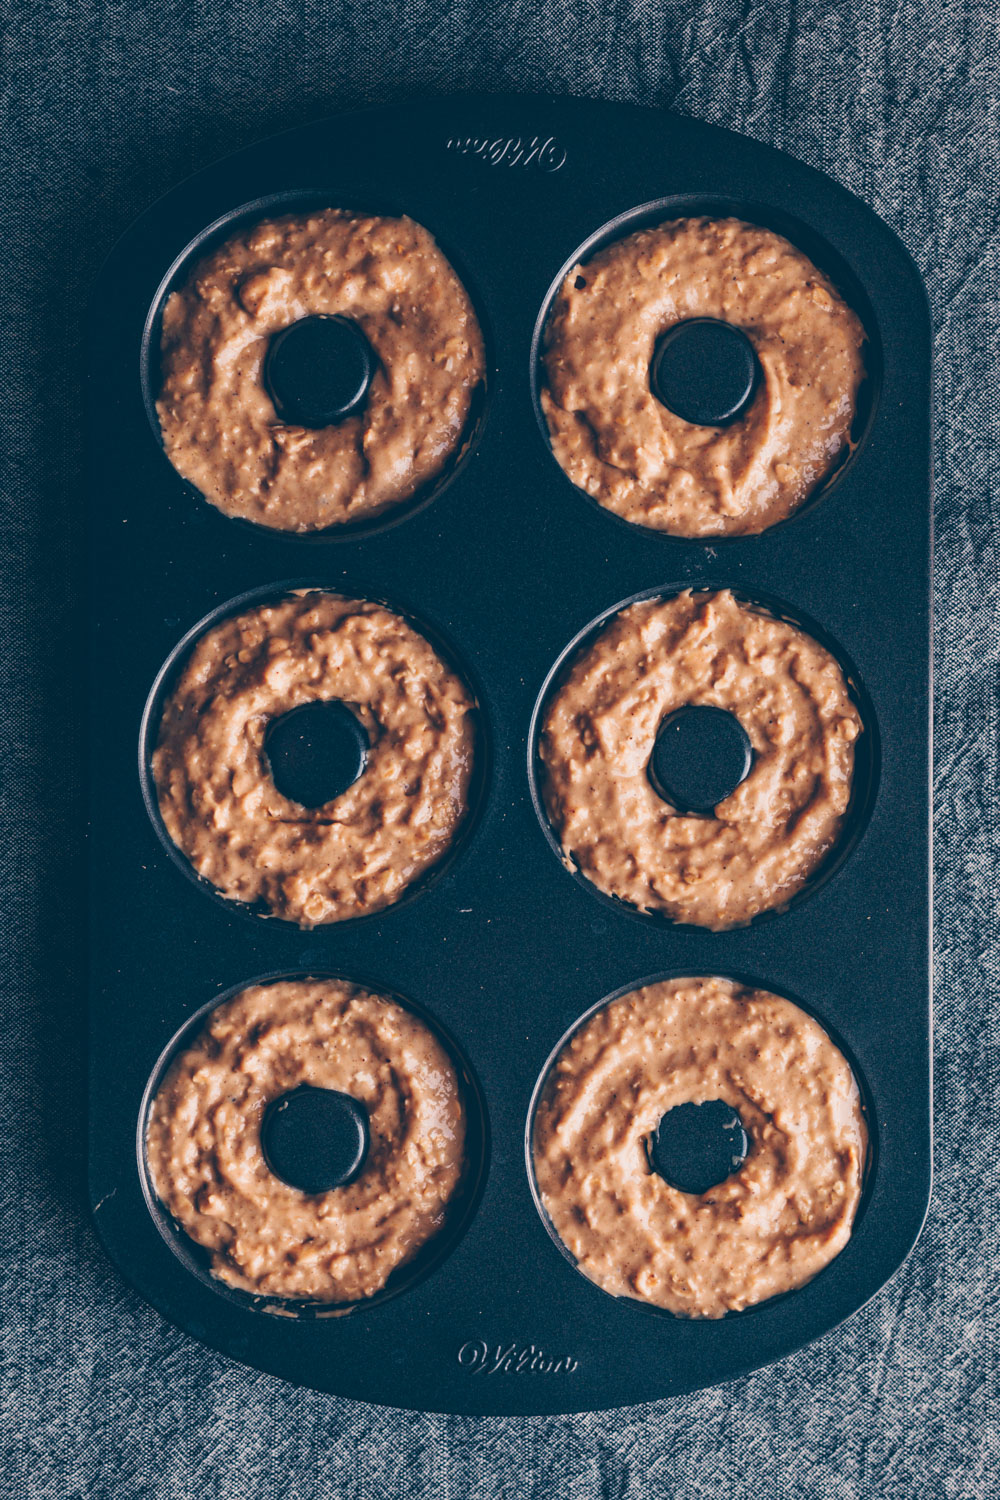 Banana Bread (Doughnuts) with Cinnamon Tahini Frosting by Kati of black.white.vivid.